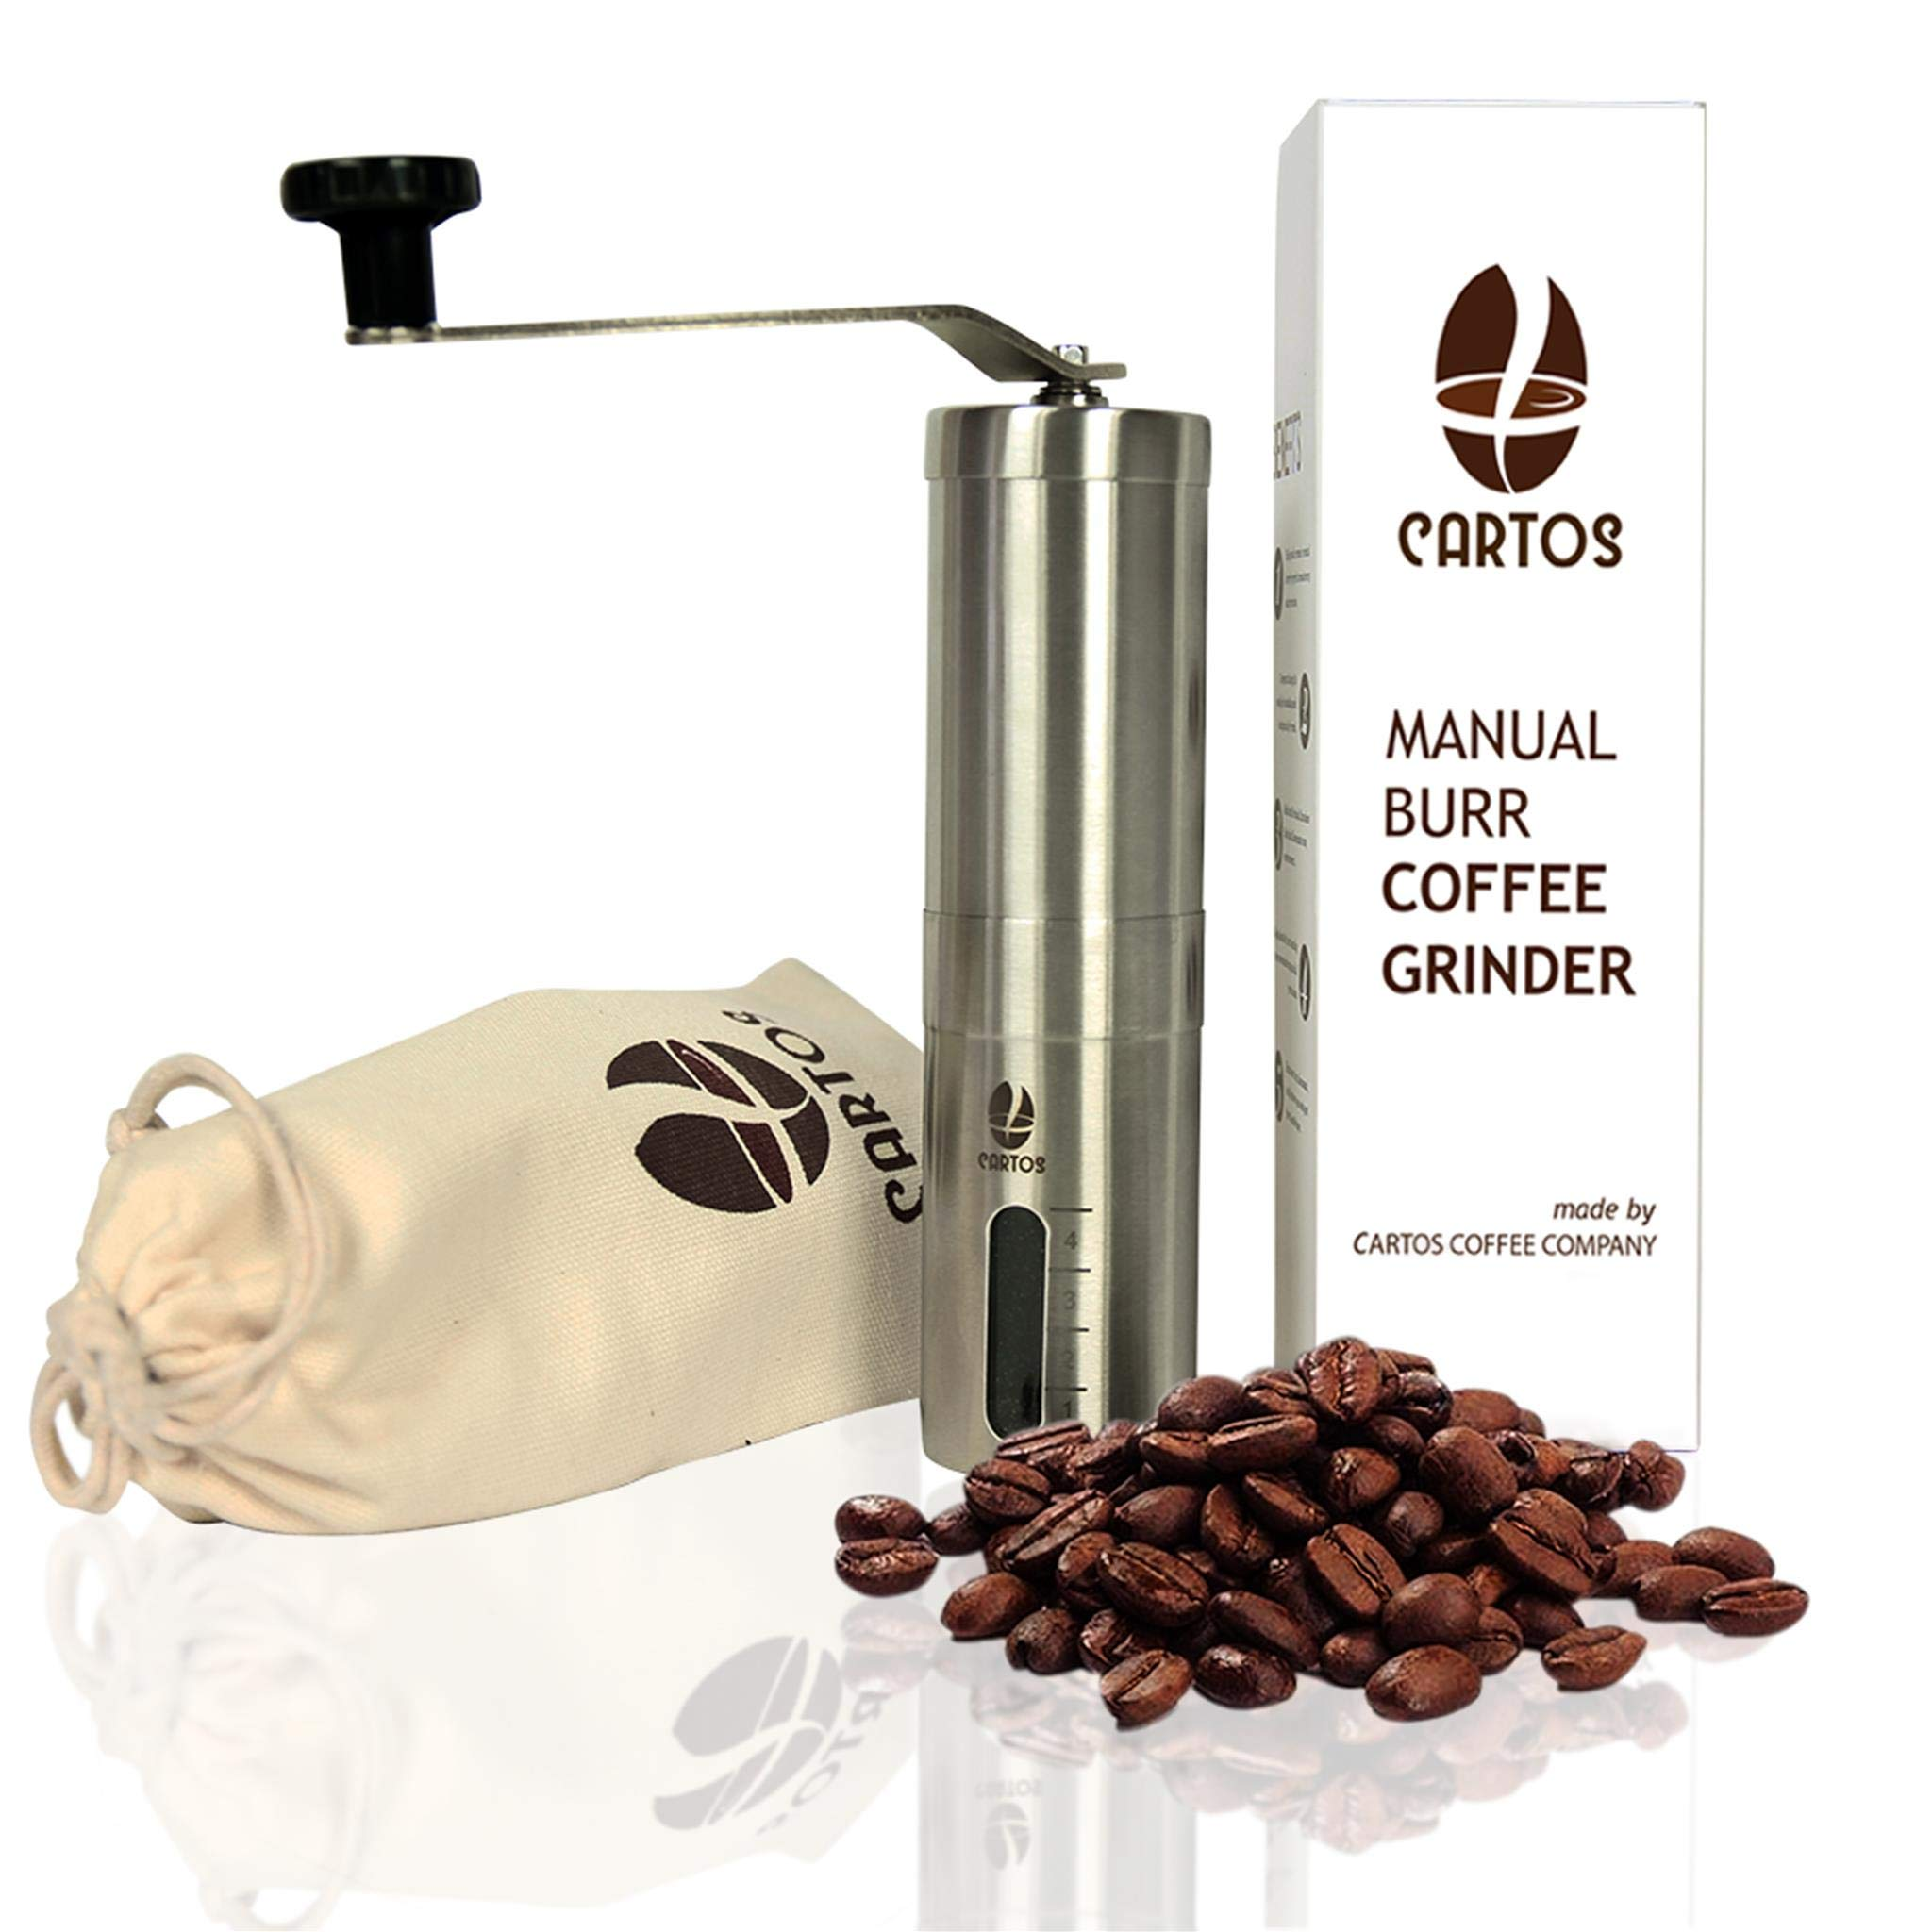 CARTOS Manual Coffee Grinder - Portable Hand Grinder - Conical Burr Mill PA 6 Ceramic - Stainless Steel Design - Perfect Traveling to brew PourOver, Drip, Chemex, Cold Brew, French Press